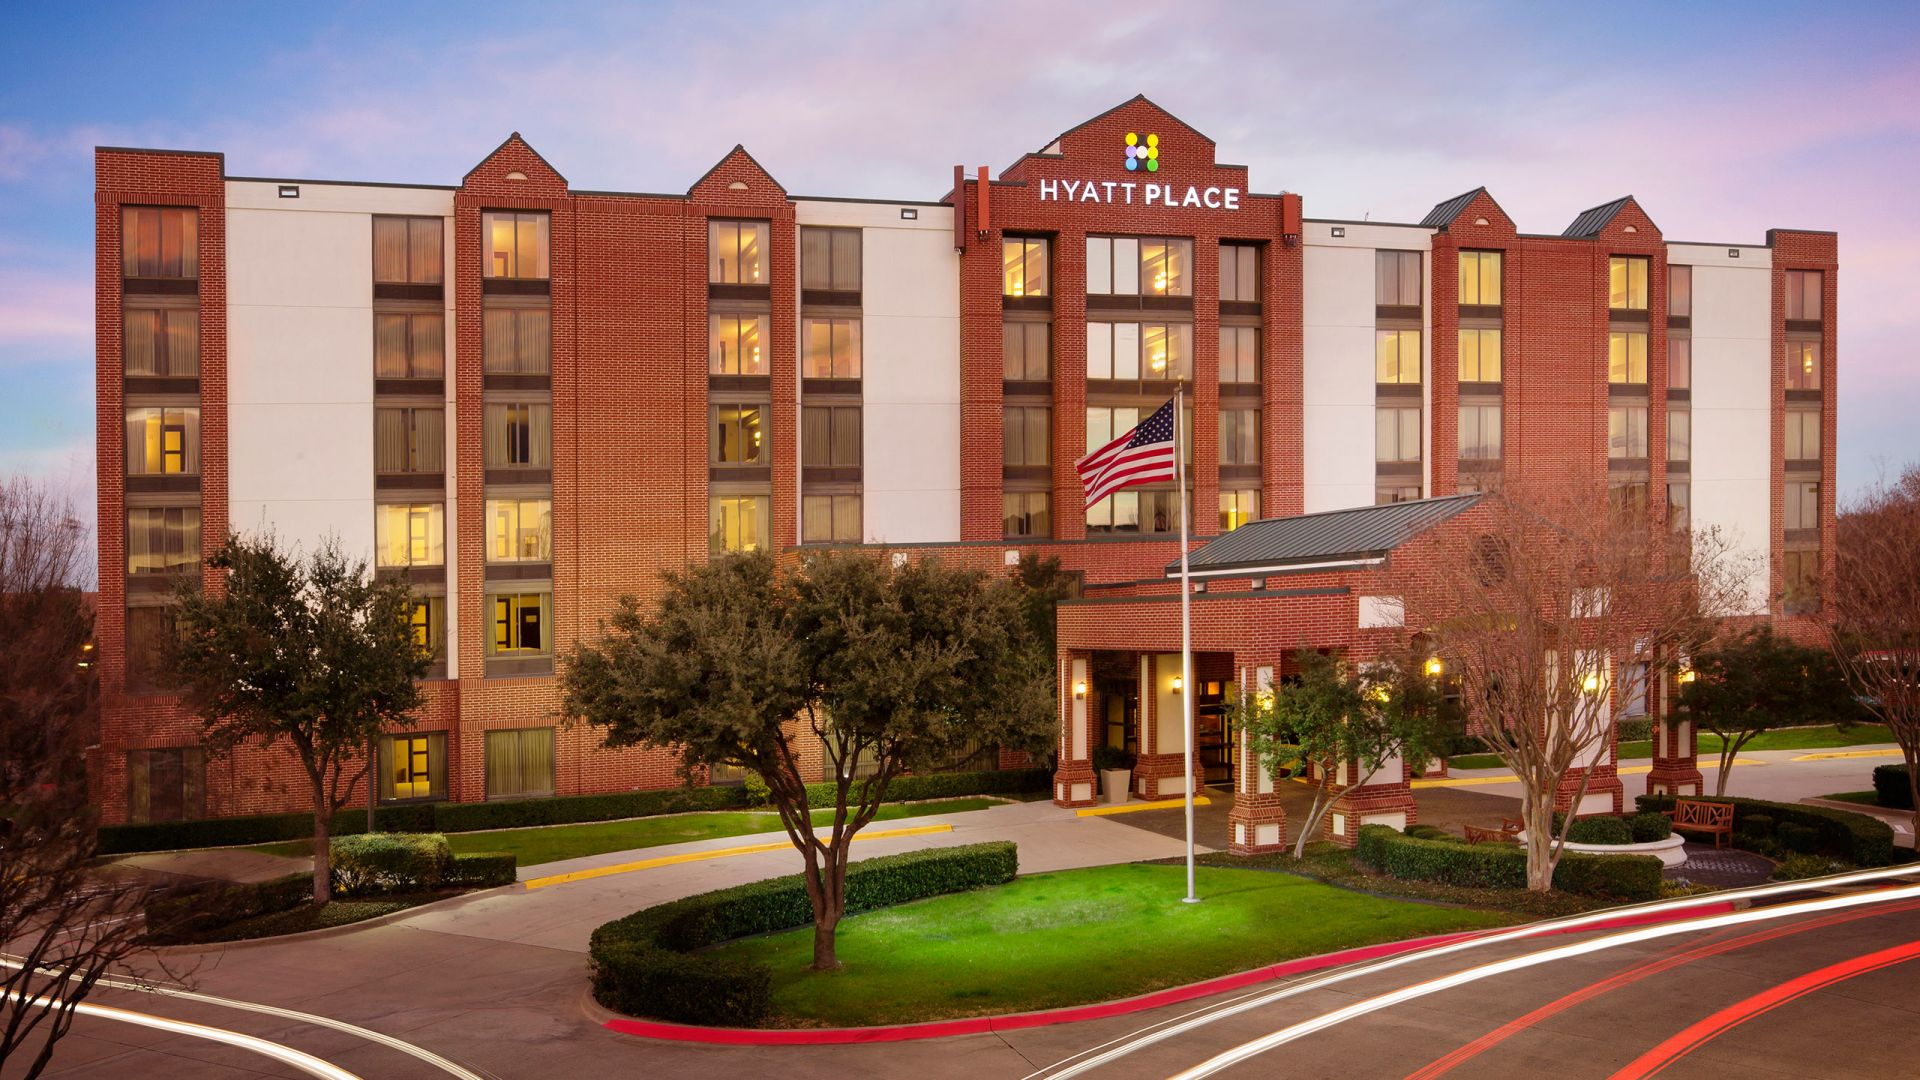 savvy hotel in plano texas near frisco and dallas hyatt place